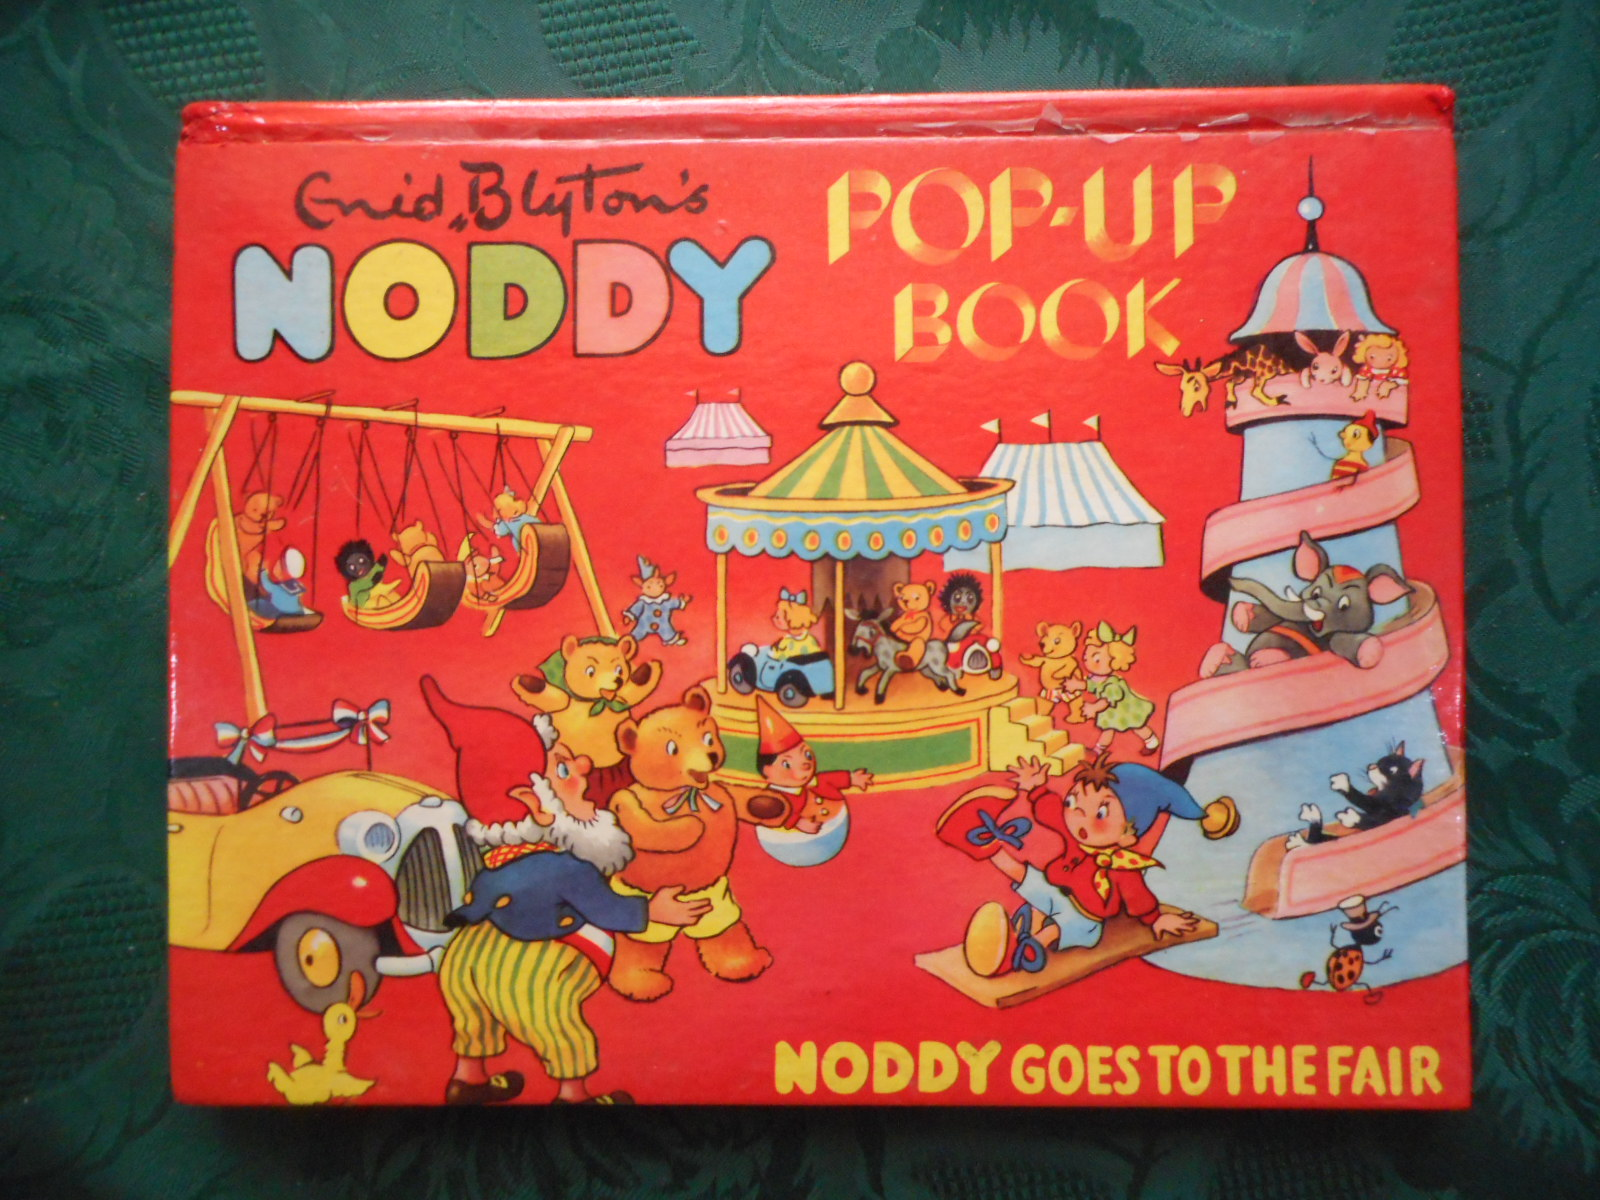 Image for Noddy Goes to the Fair. Enid Blyton's Noddy Pop-Up Book